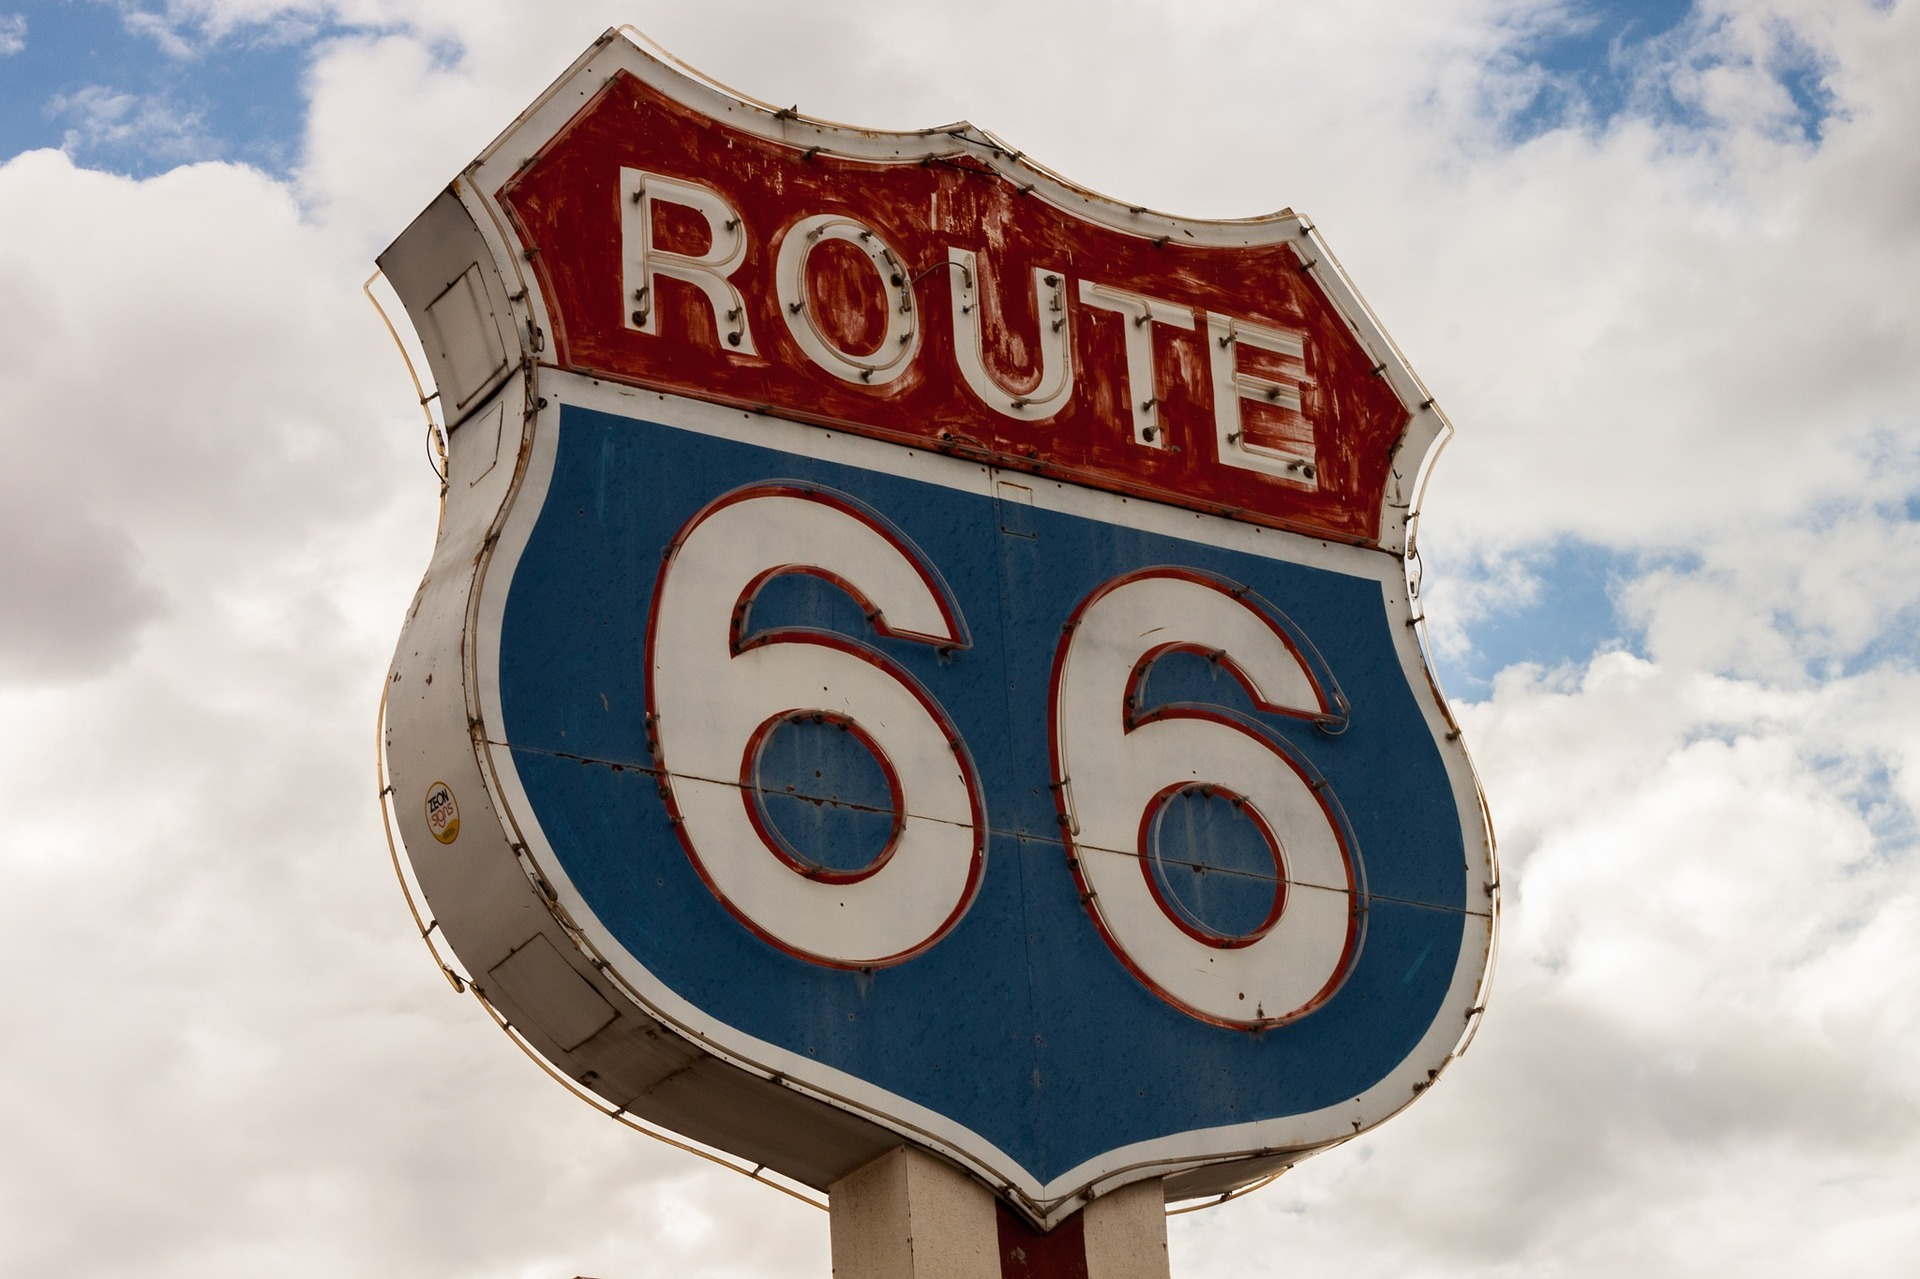 Road-trip Route 66